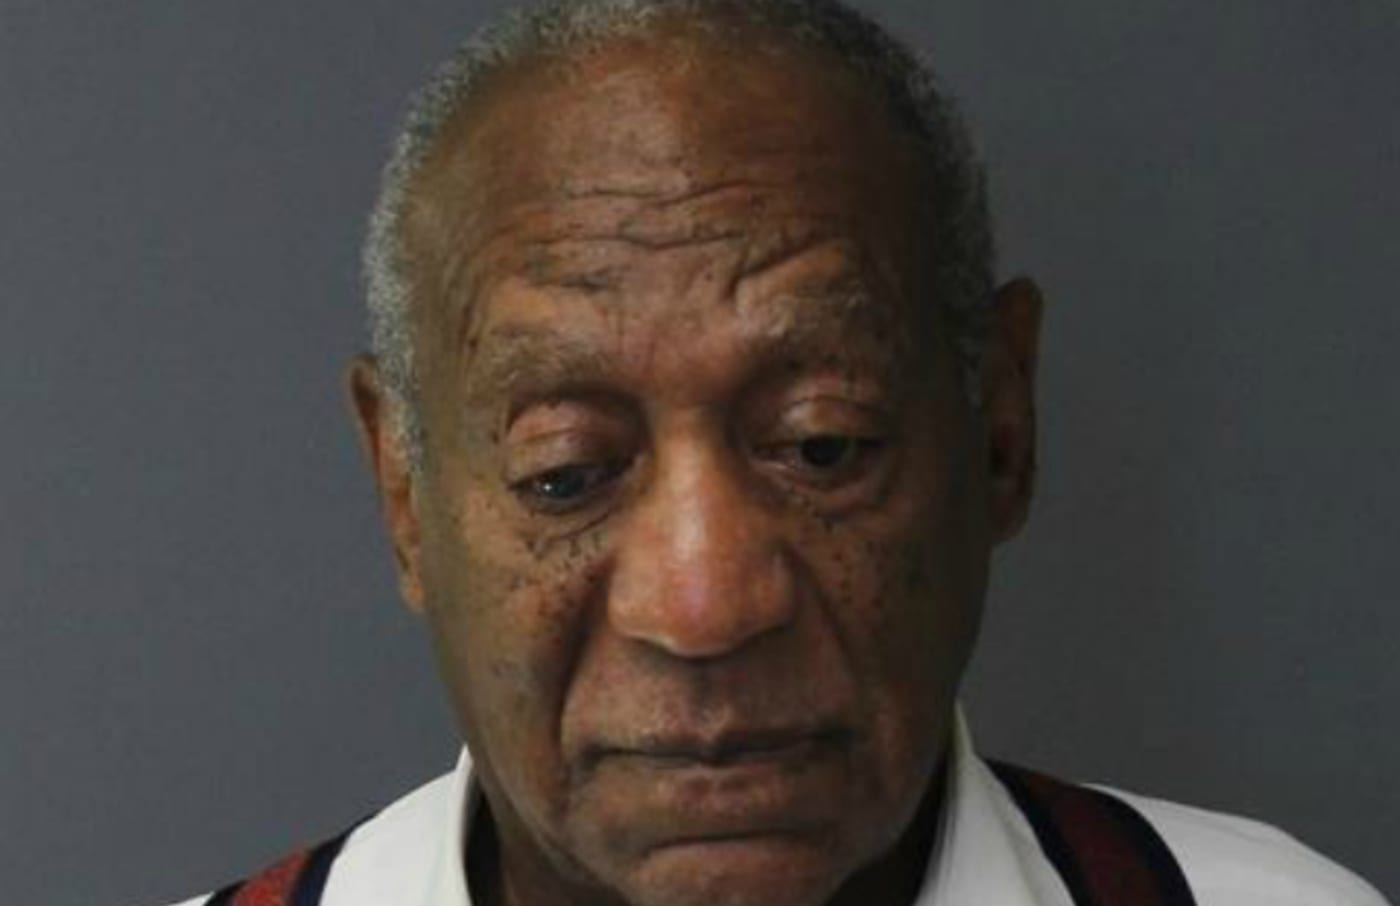 Bill Cosby poses for a mugshot